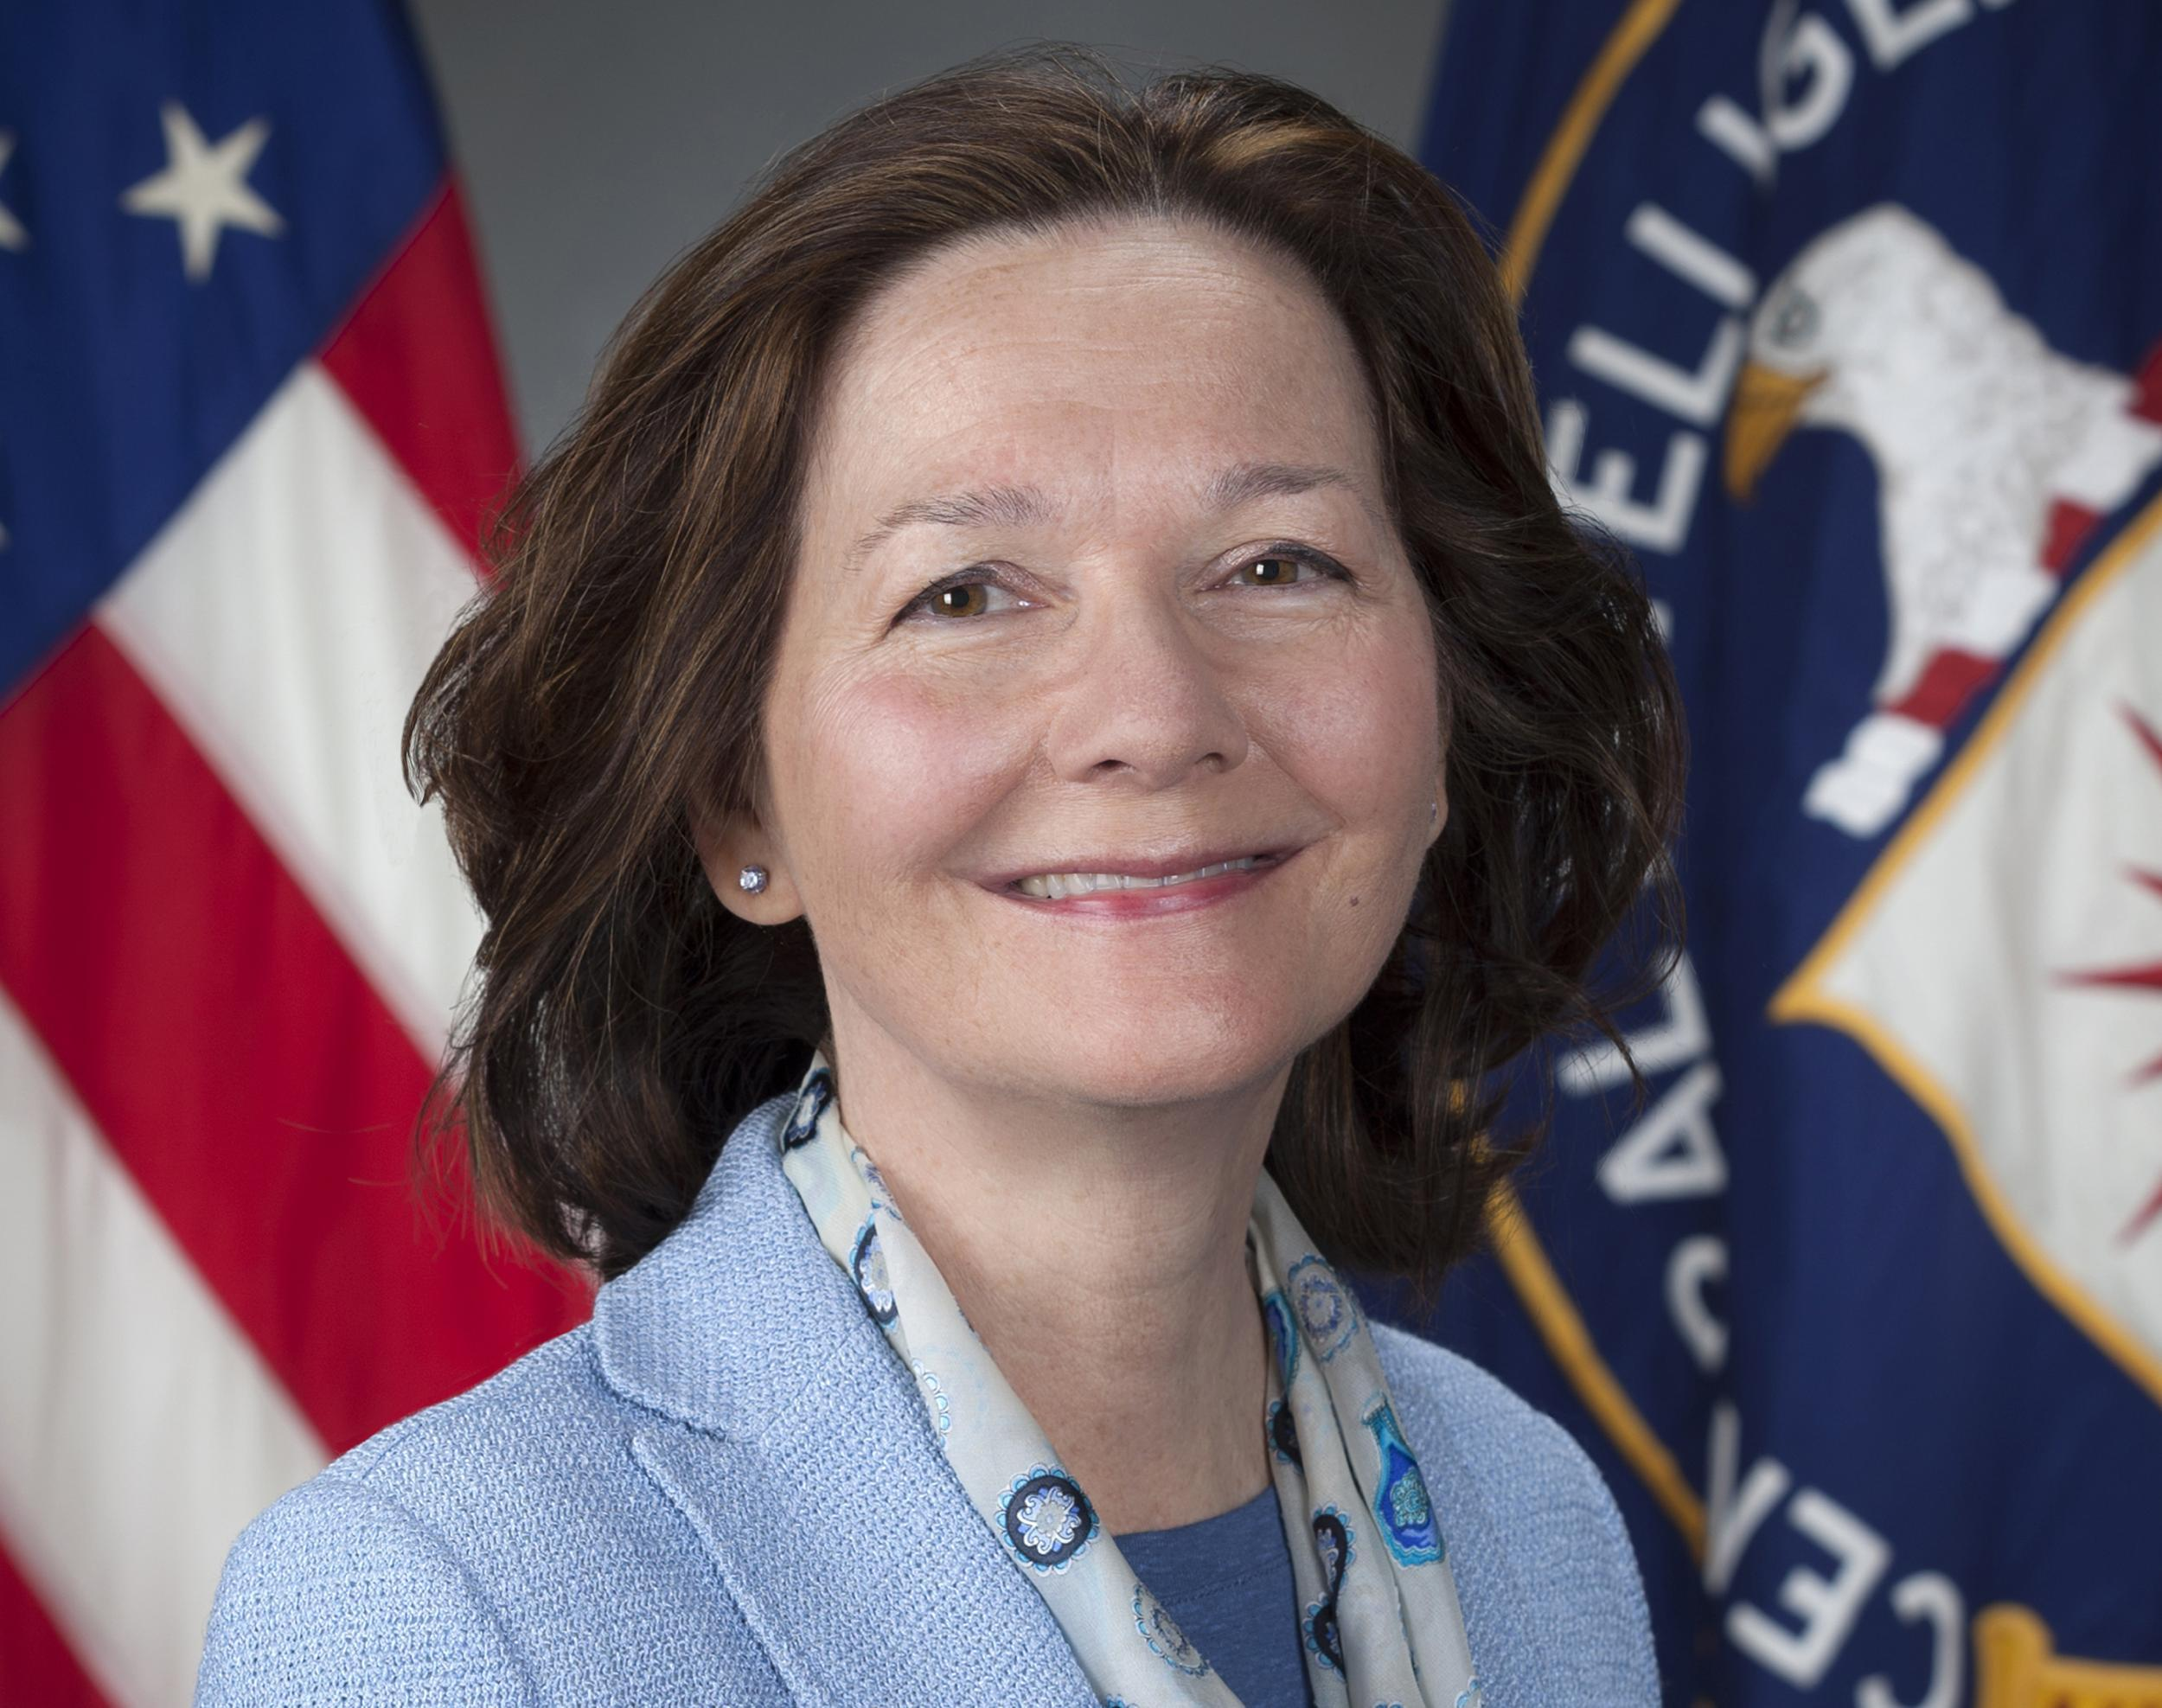 Gina Haspel: Who is the woman Donald Trump wants to take over the CIA?